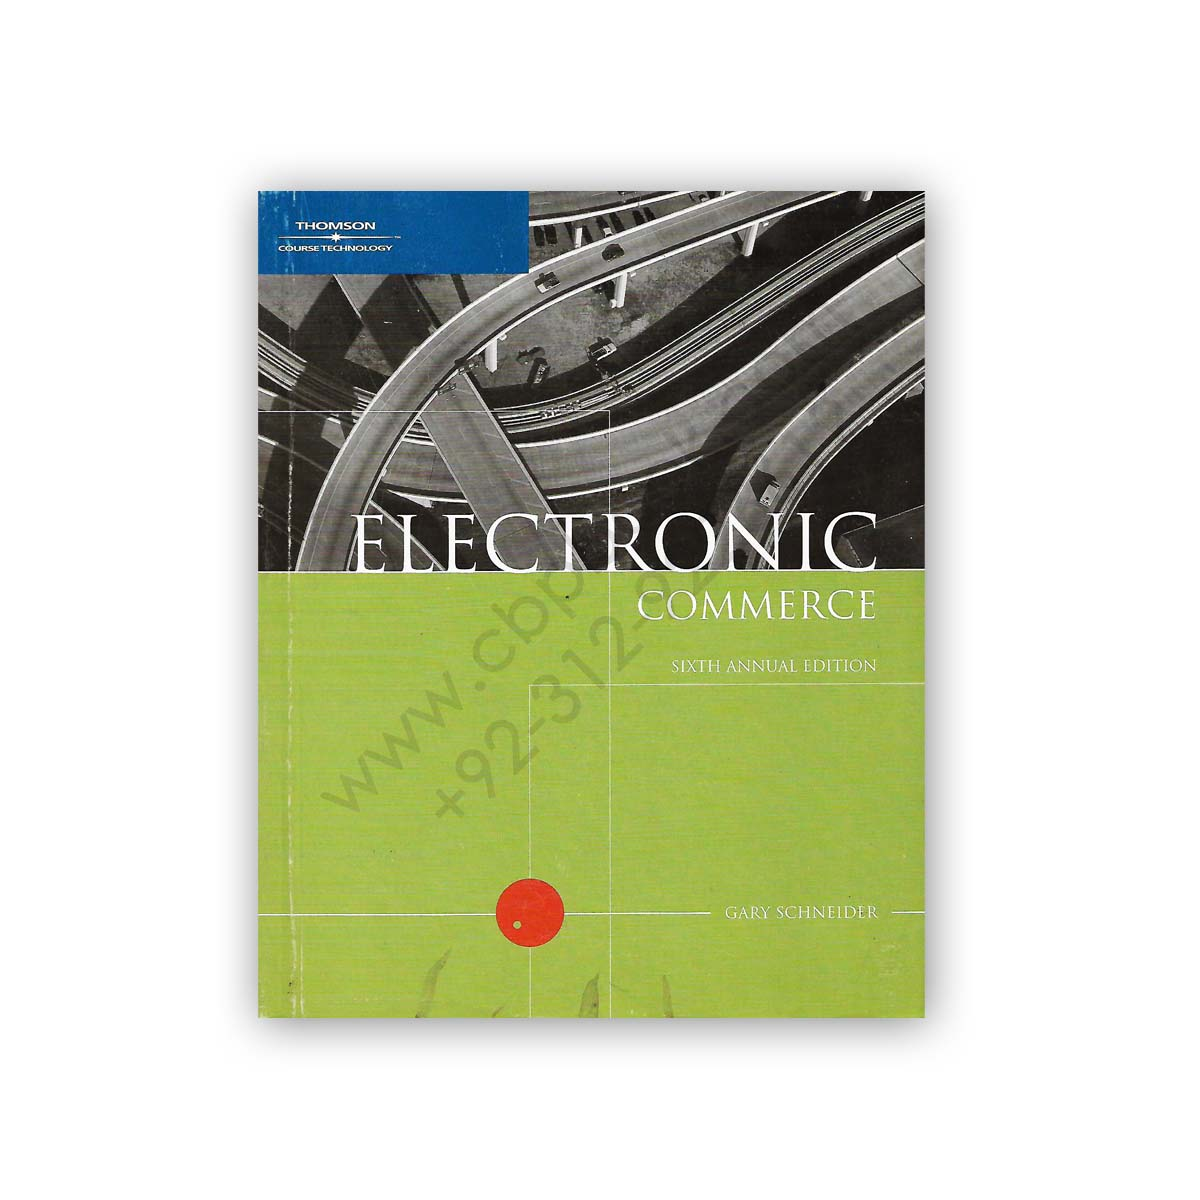 electronic commerce gary schneider sixth annual edition - thomson